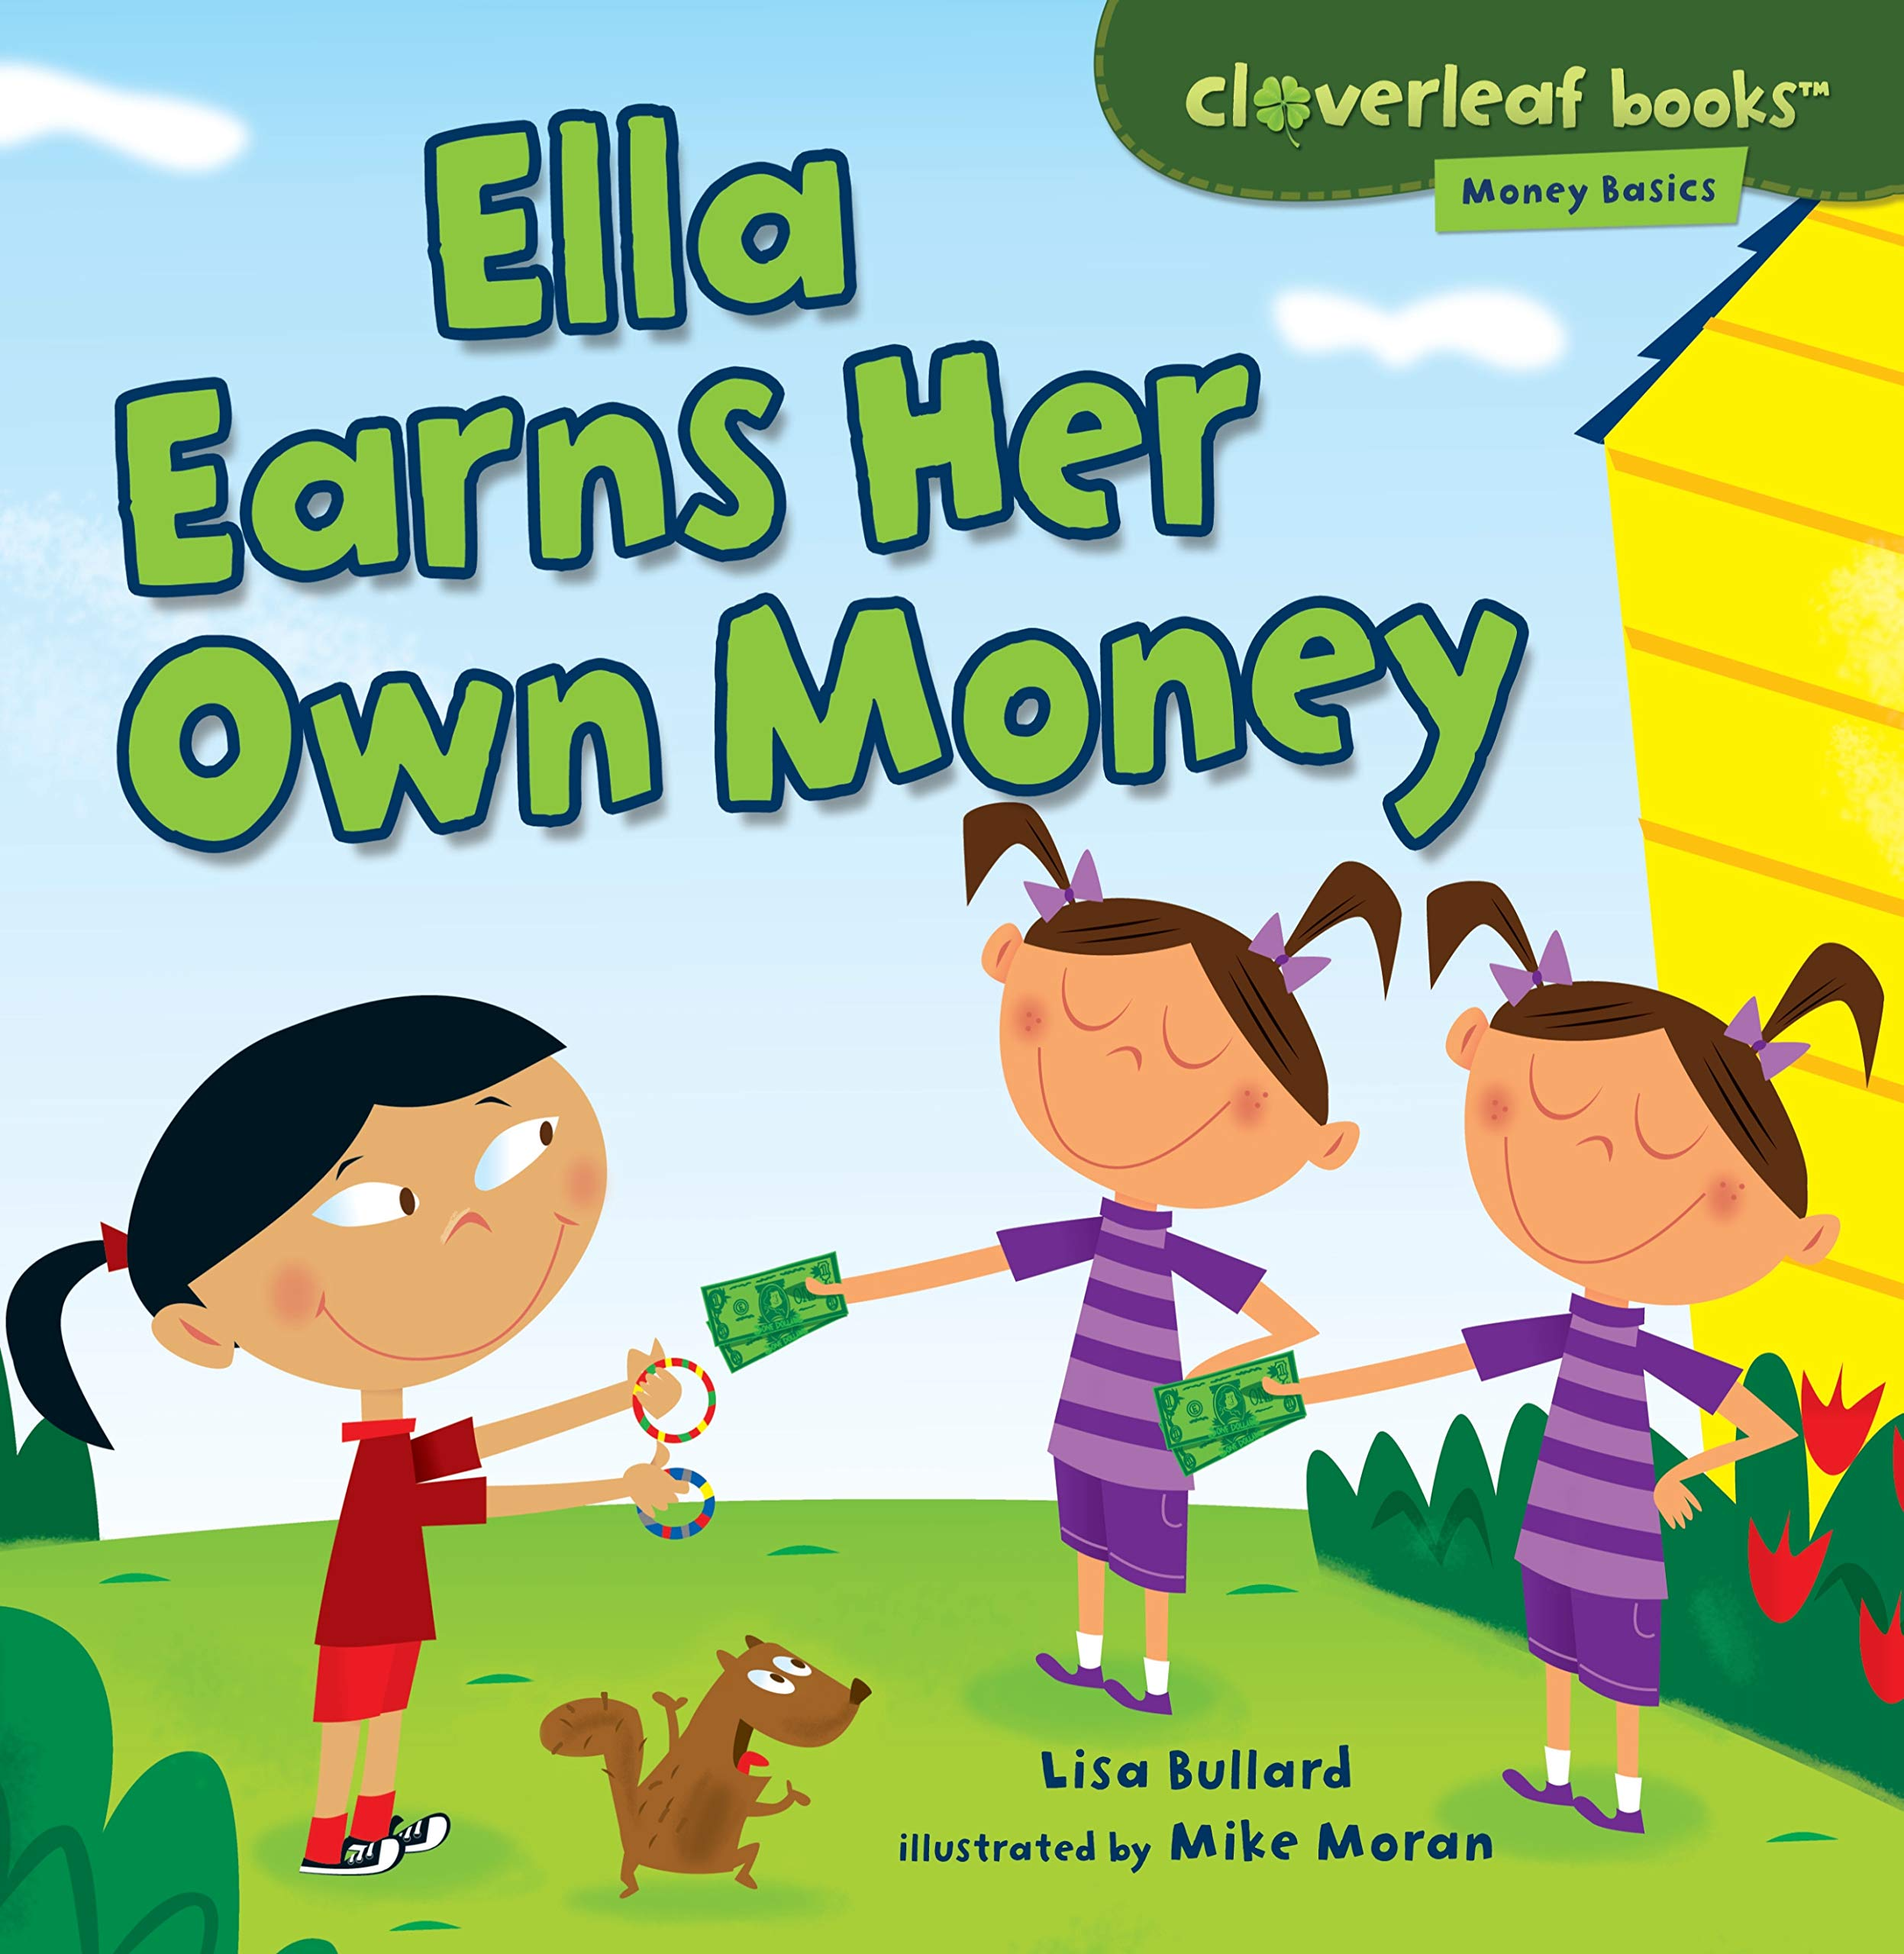 Image result for ella earns her own money